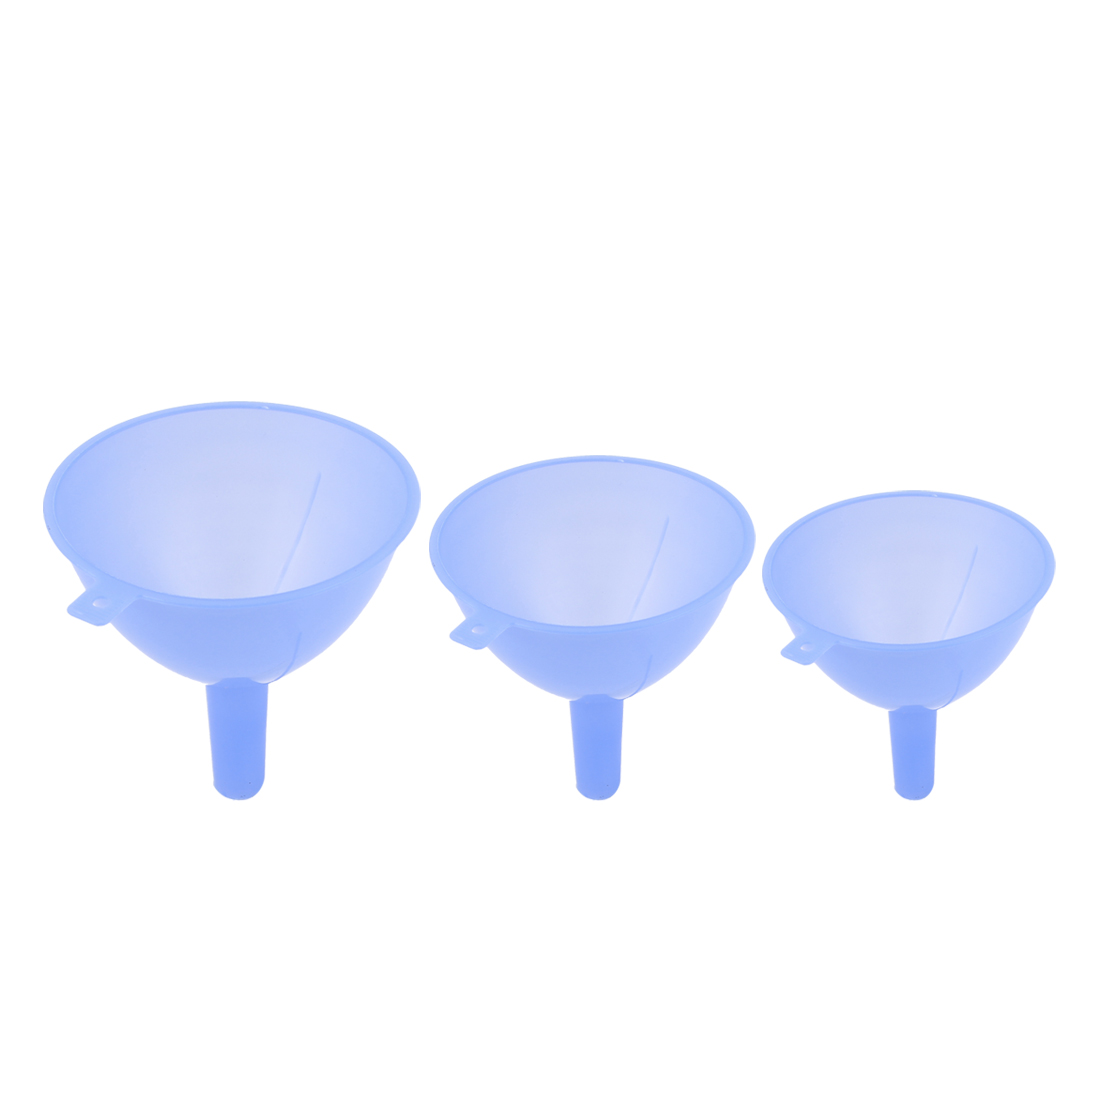 3 in 1 Liquid Oil Plastic 3 Sizes 120mm 110mm 90mm Dia Filter Funnels Blue